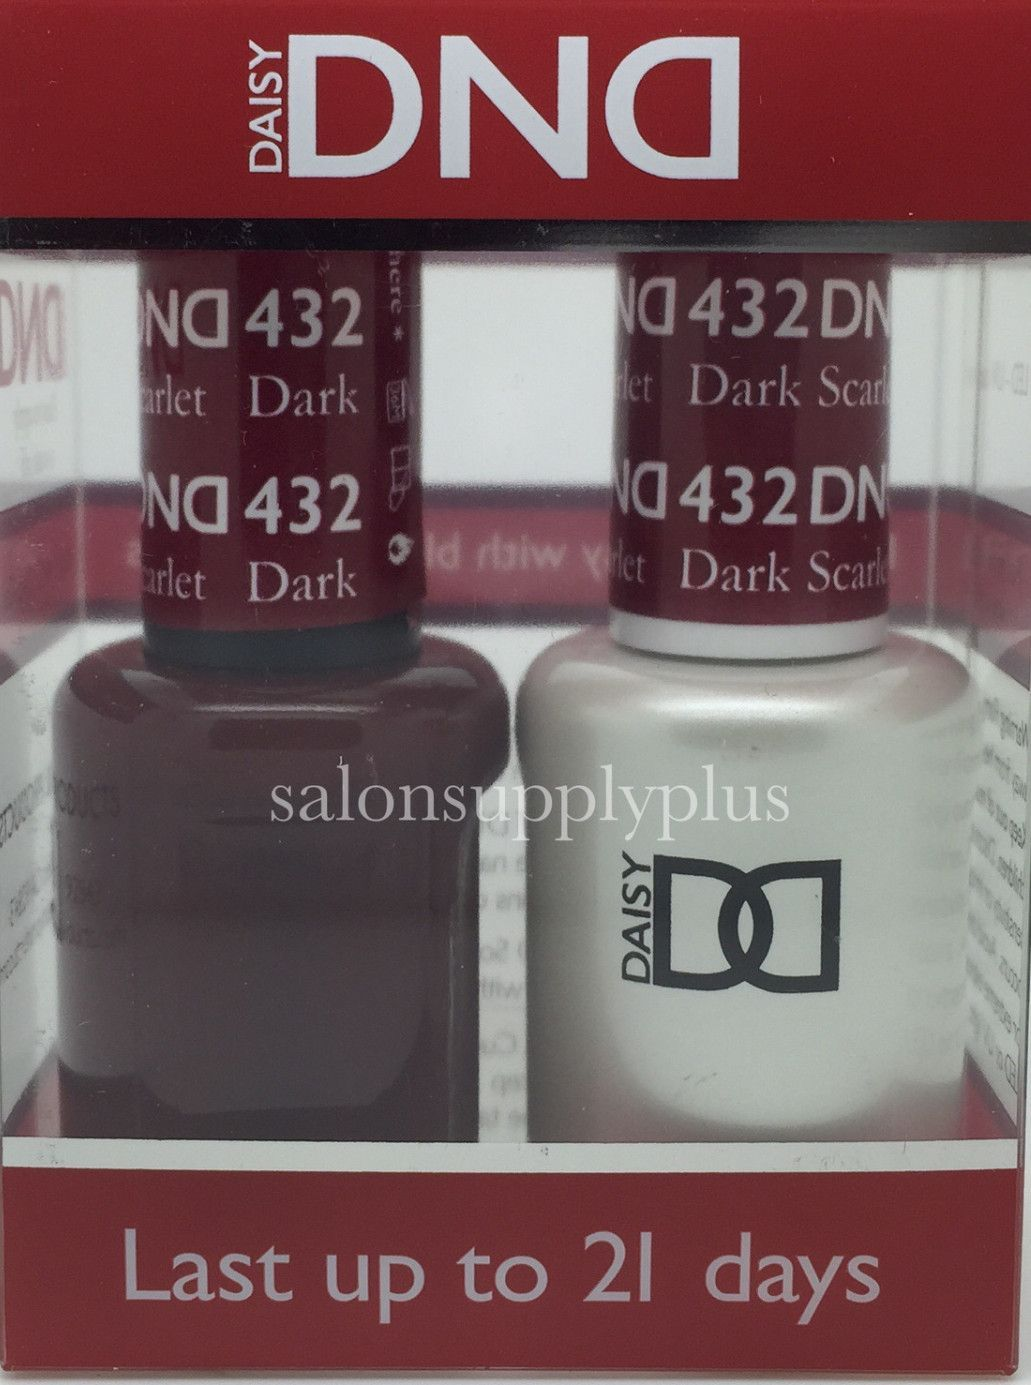 DND Duo Gel - Dark Scarlet